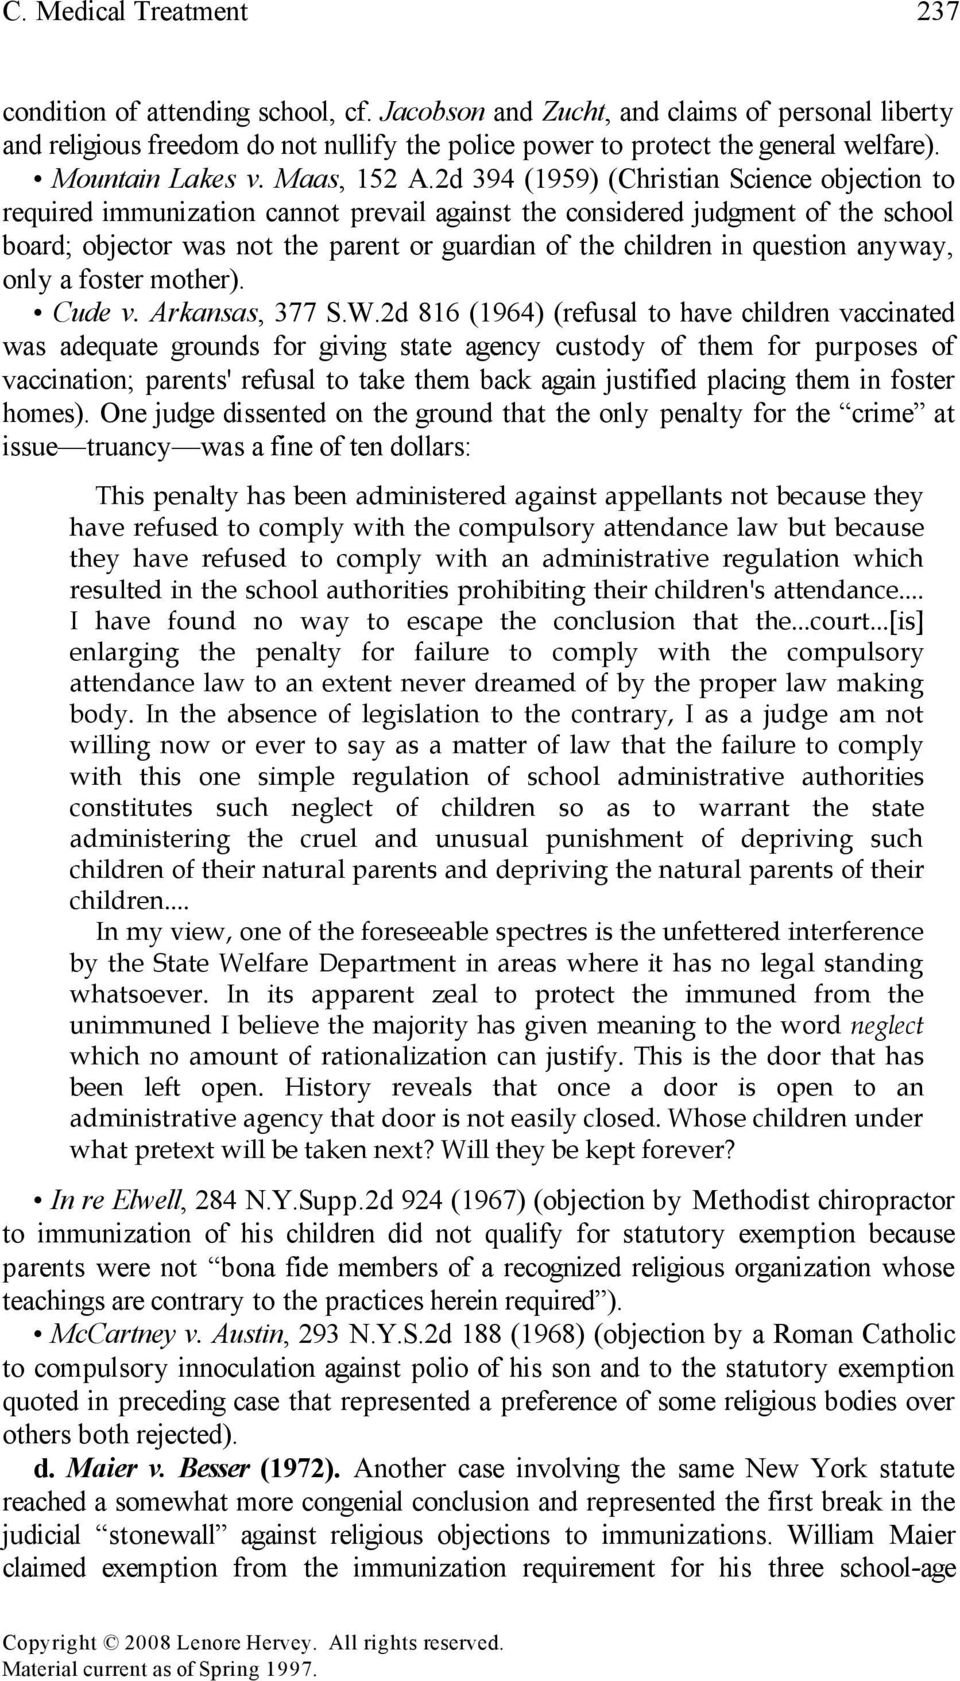 2d 394 (1959) (Christian Science objection to required immunization cannot prevail against the considered judgment of the school board; objector was not the parent or guardian of the children in